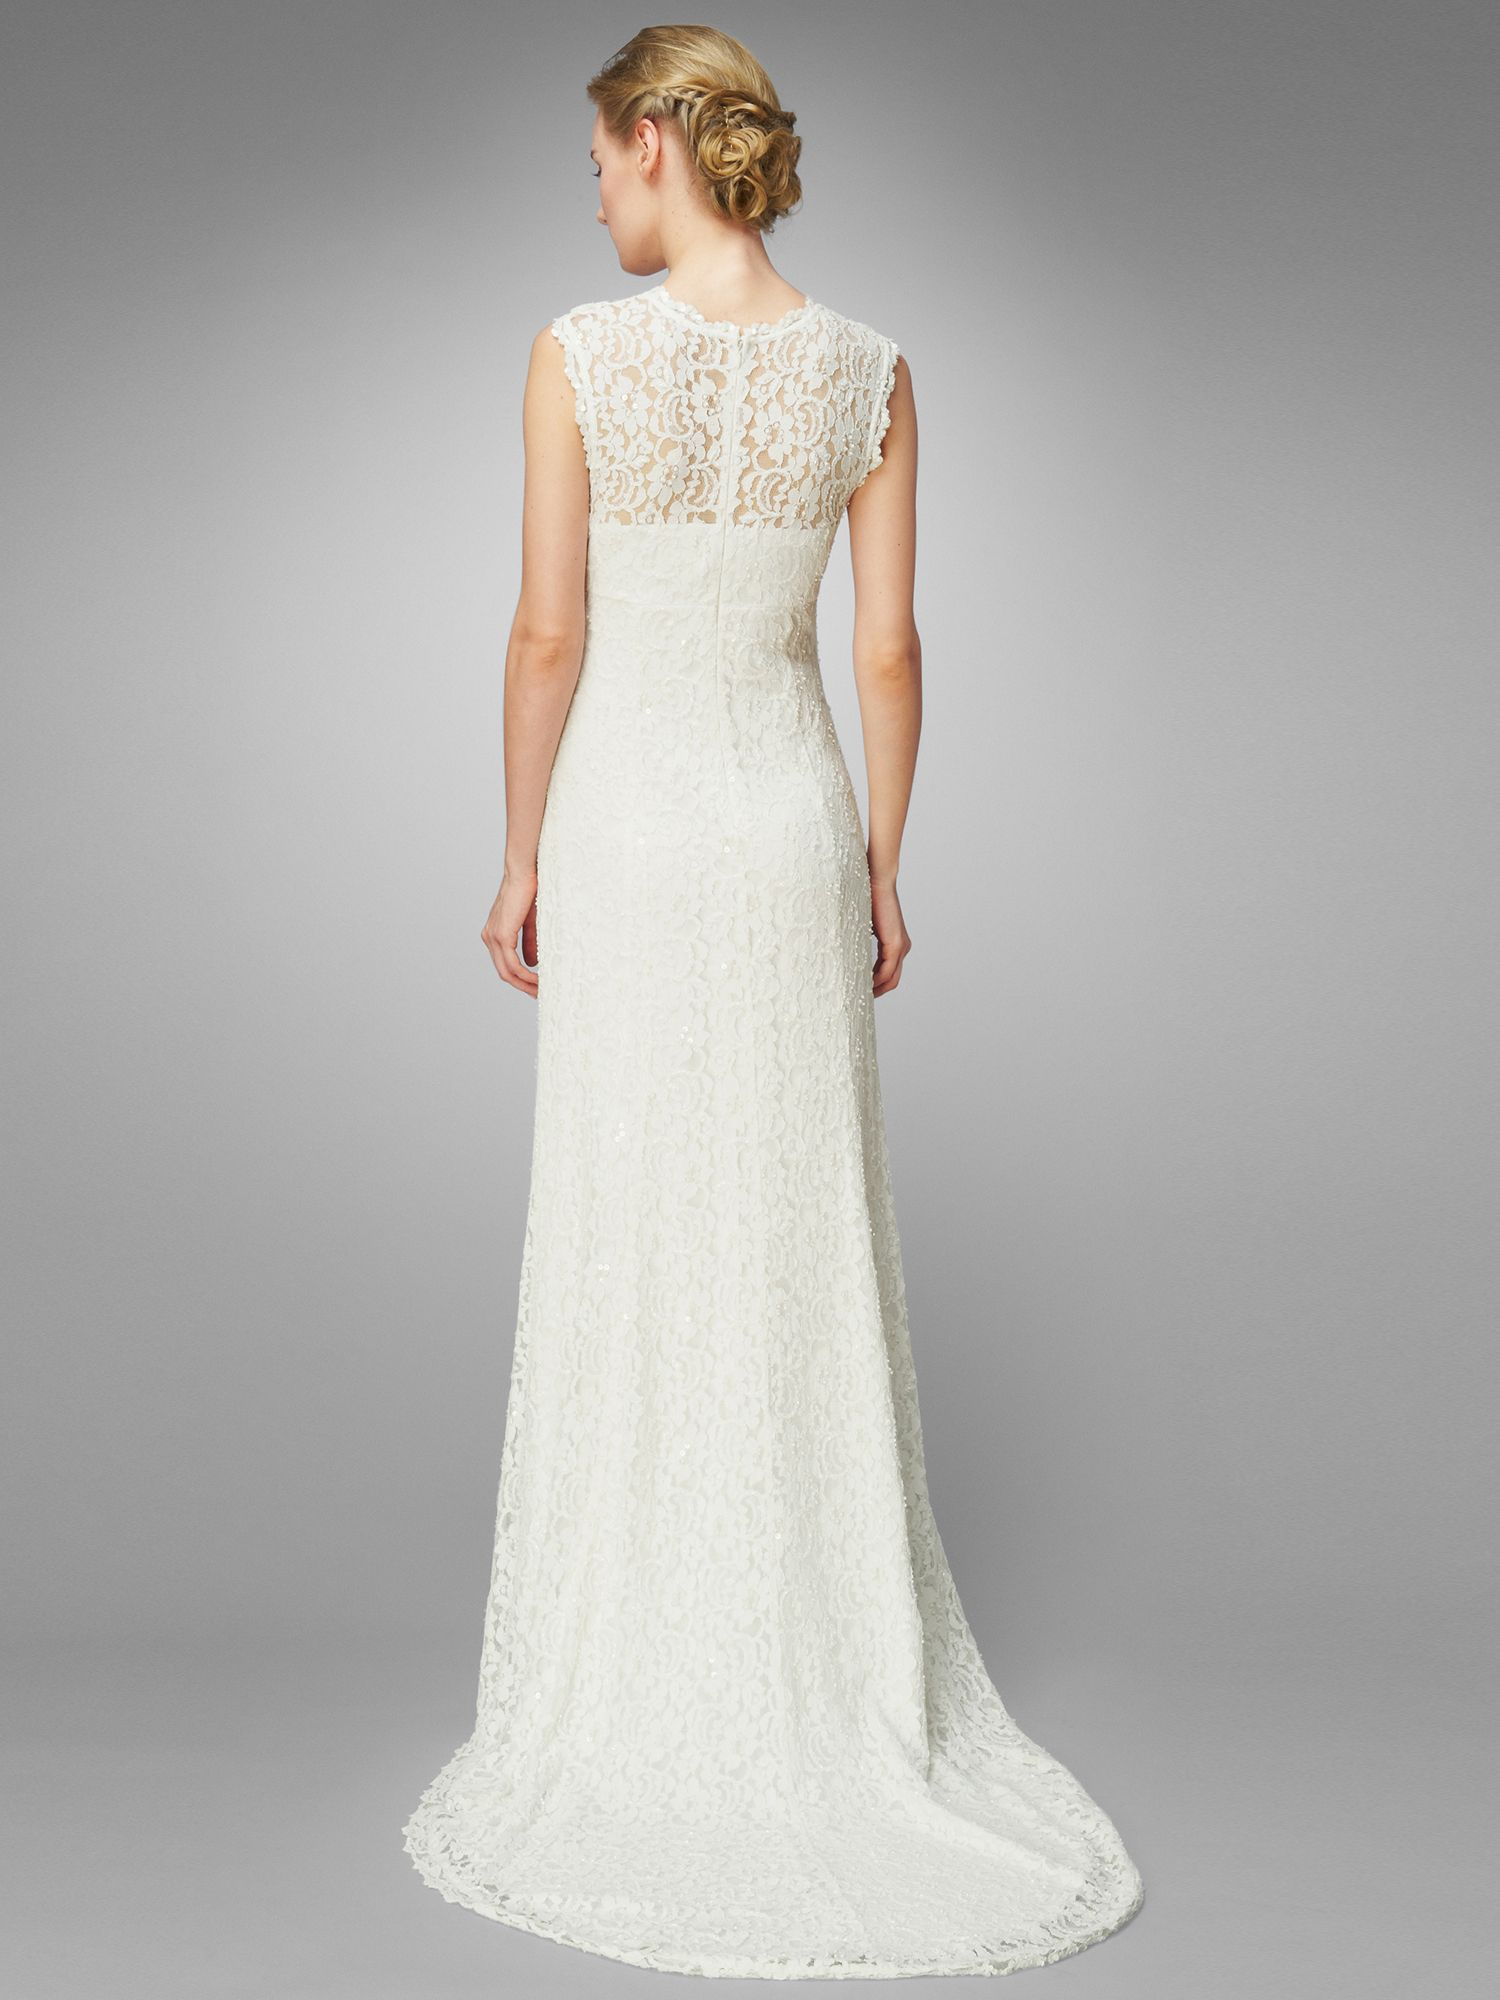 Mariette wedding dress